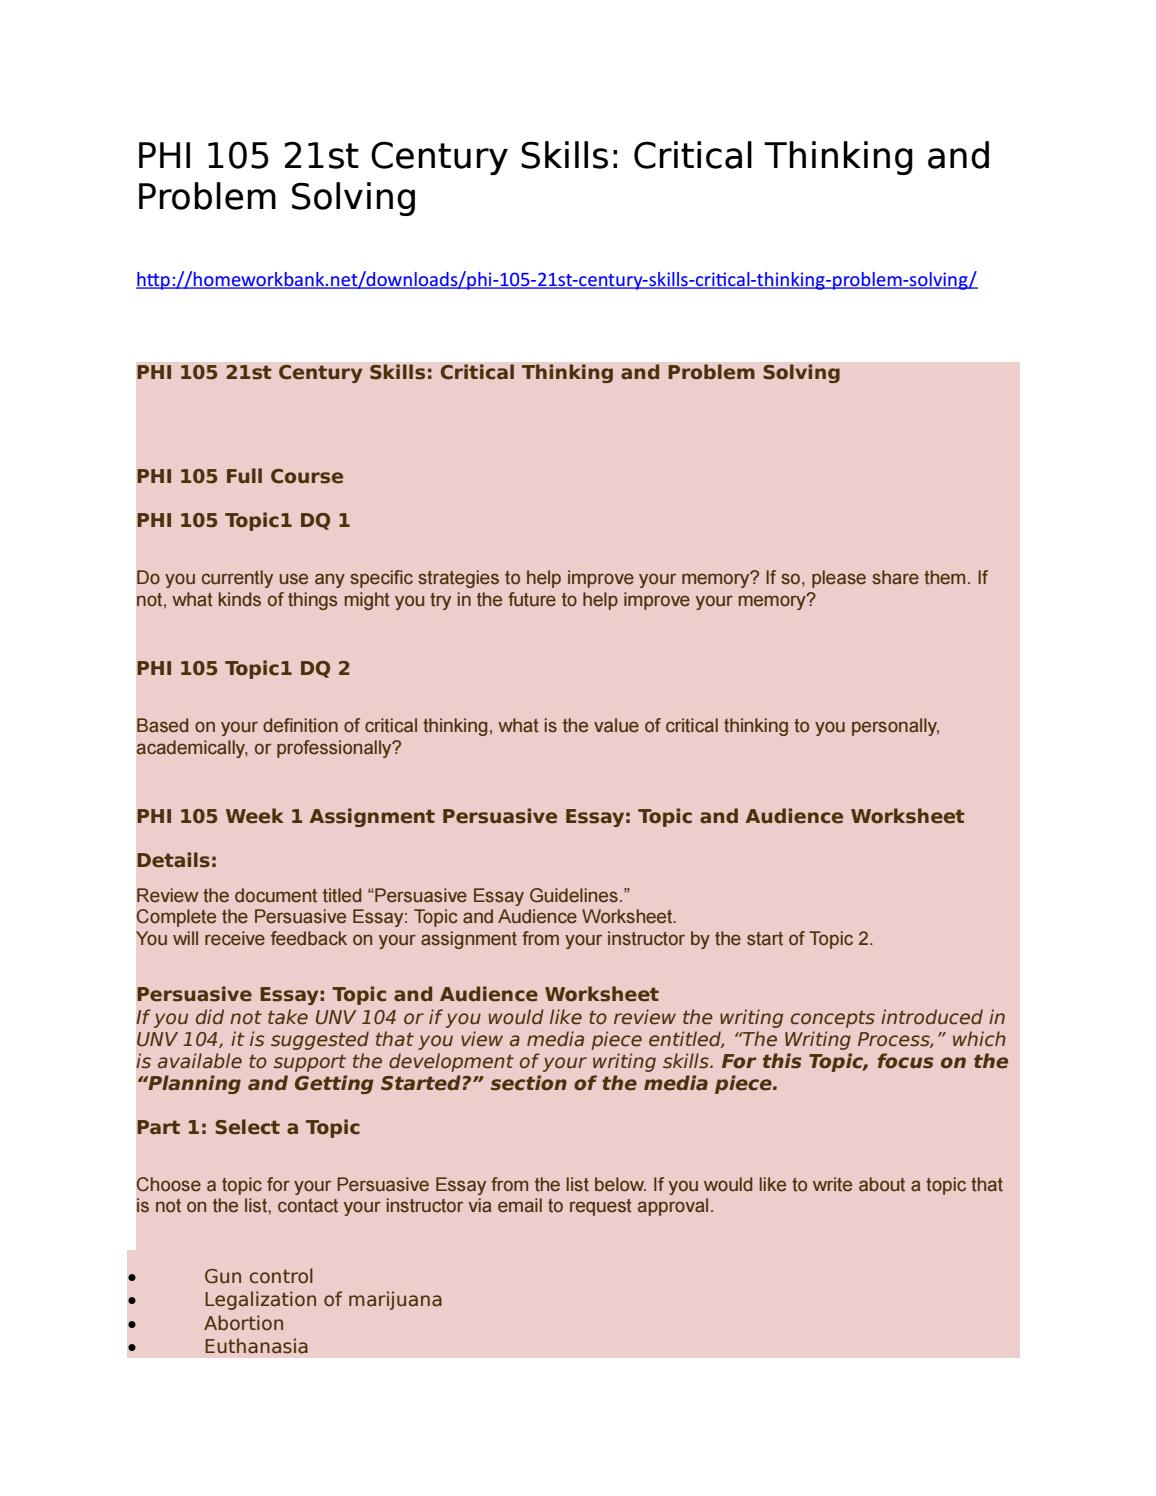 phi-105 21st century skills critical thinking and problem solving